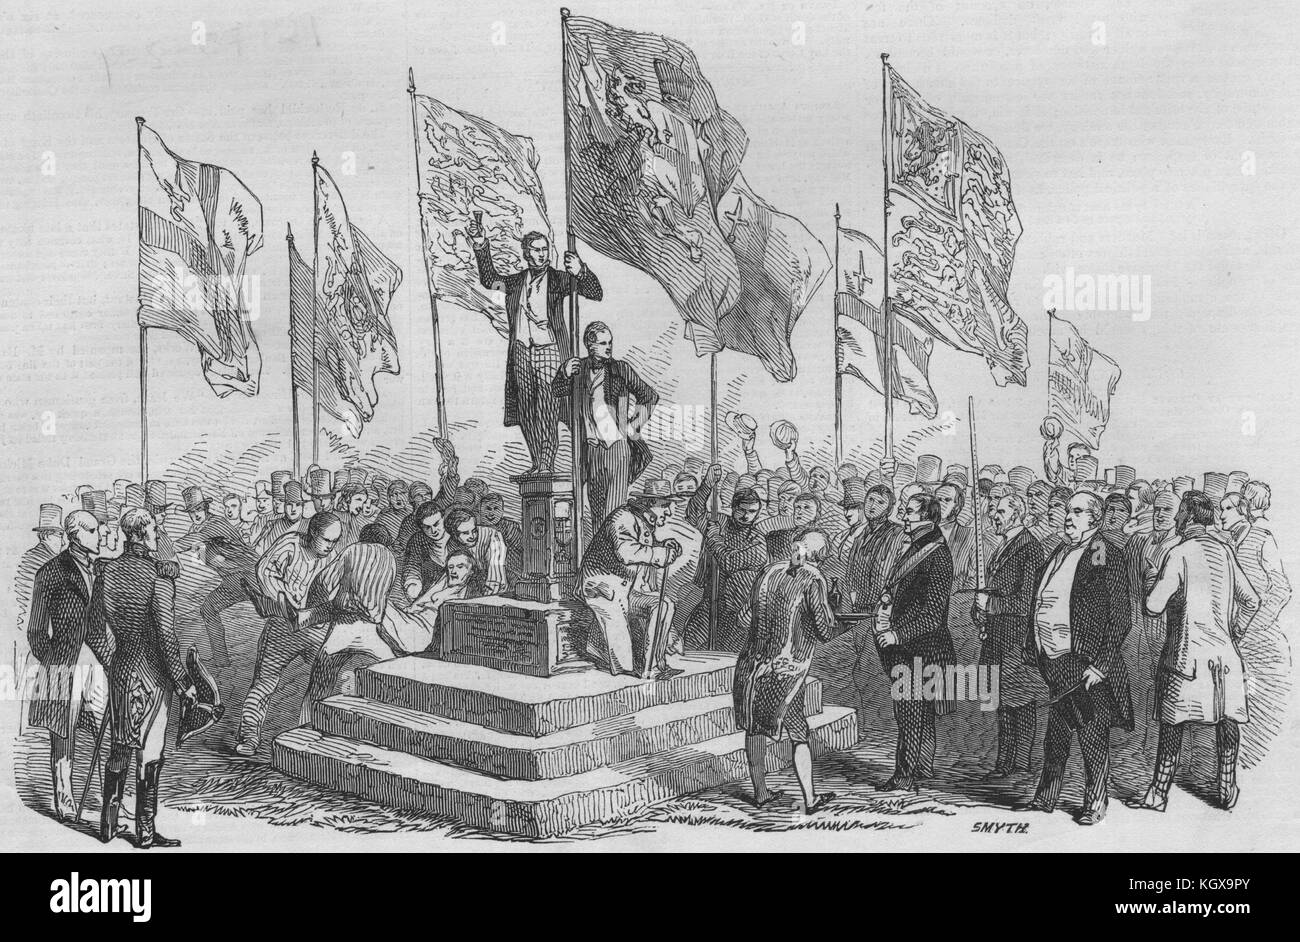 Lord Mayor's view of the Thames. Ceremony at the boundary stone, Staines 1846. The Illustrated London News - Stock Image